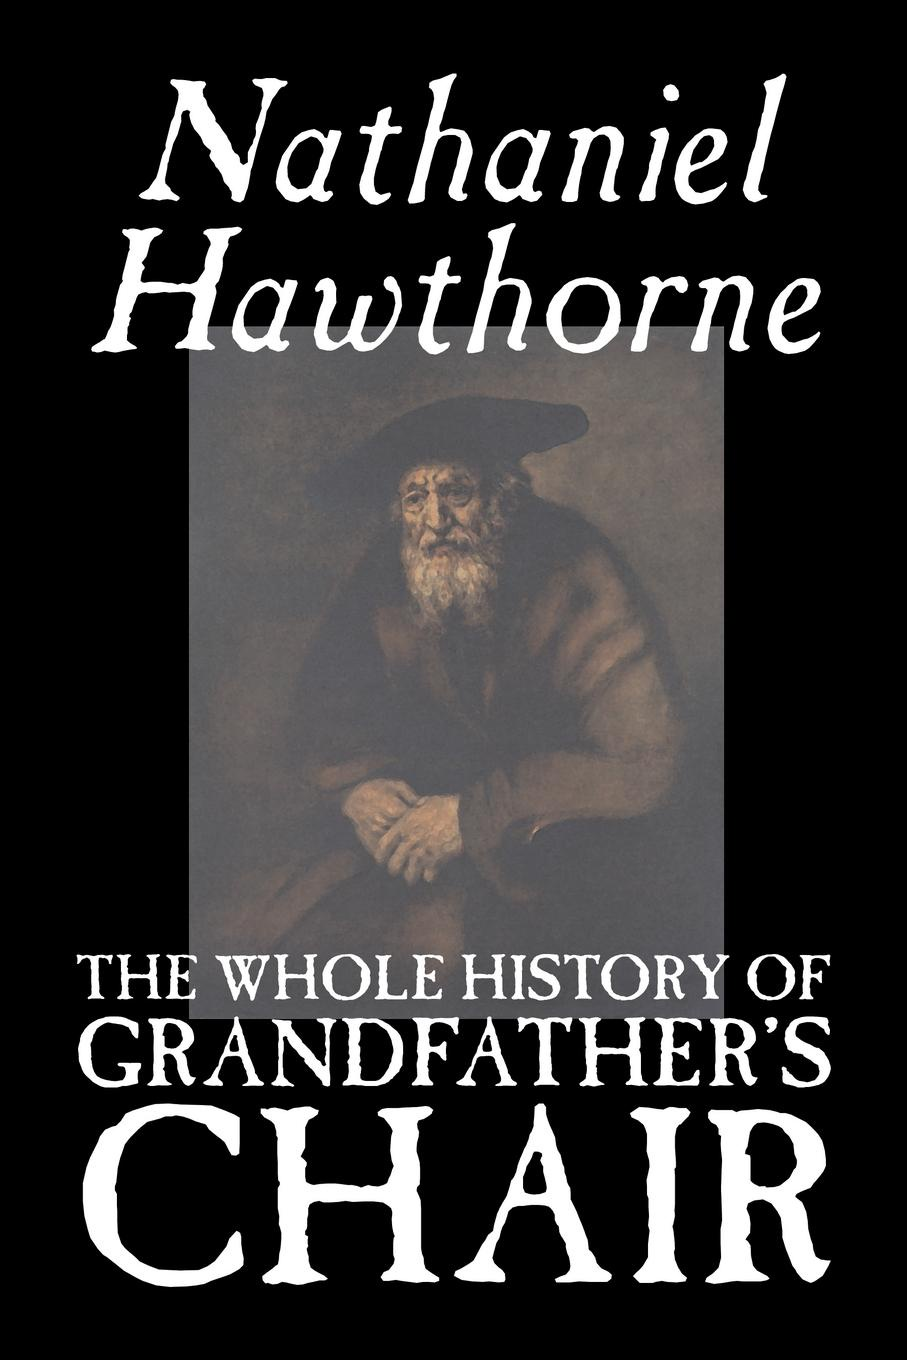 Hawthorne Nathaniel The Whole History of Grandfather's Chair by Nathaniel Hawthorne, Fiction, Classics hawthorne nathaniel john inglefield s thanksgiving